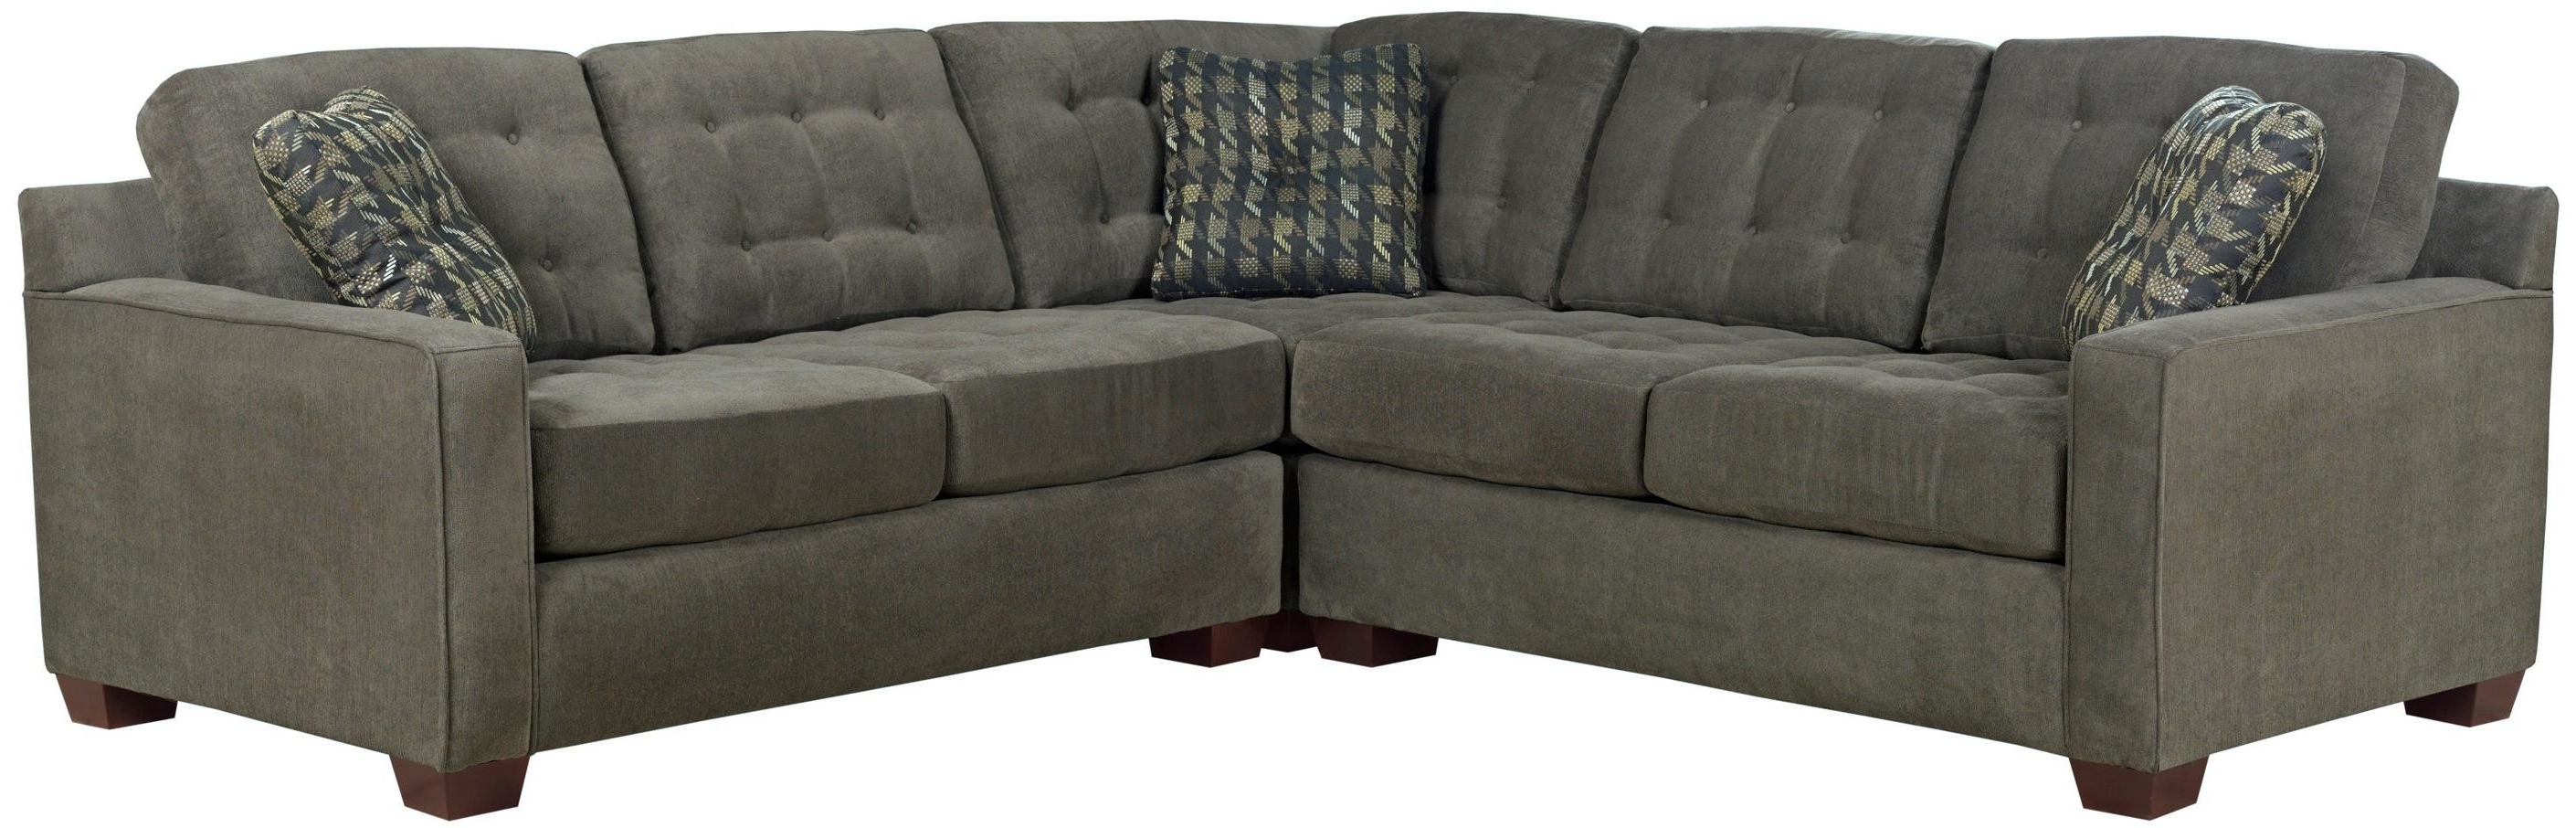 Homemakers Furniture Des Moines Iowa For 2018 Des Moines Ia Sectional Sofas (View 7 of 20)